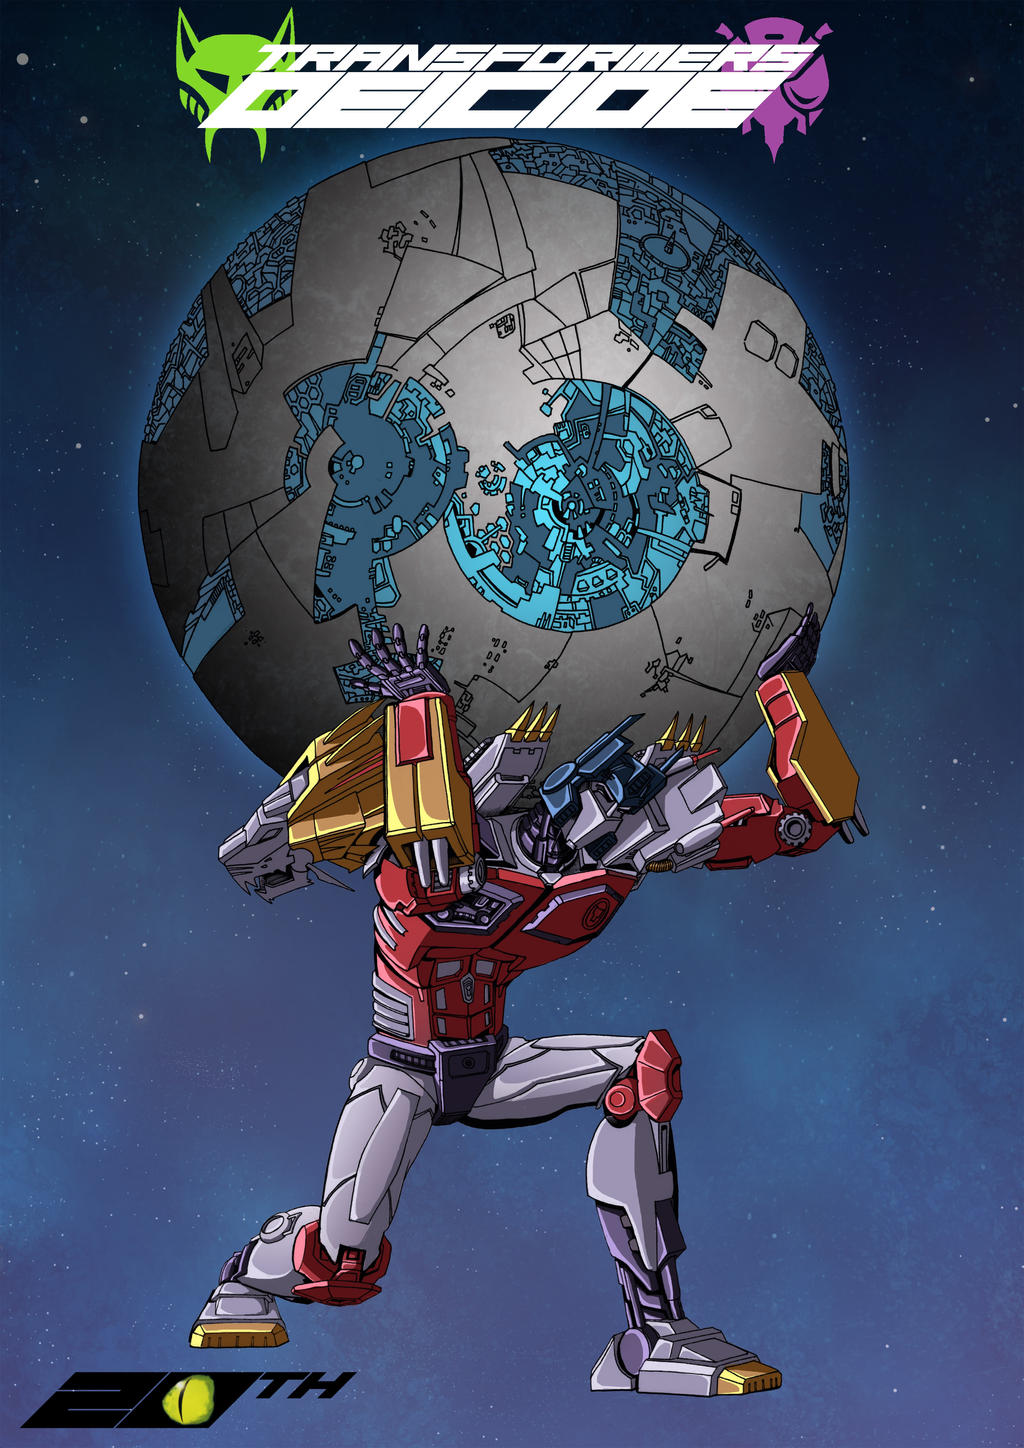 transformers__deicide___cover_1_by_rh1n0